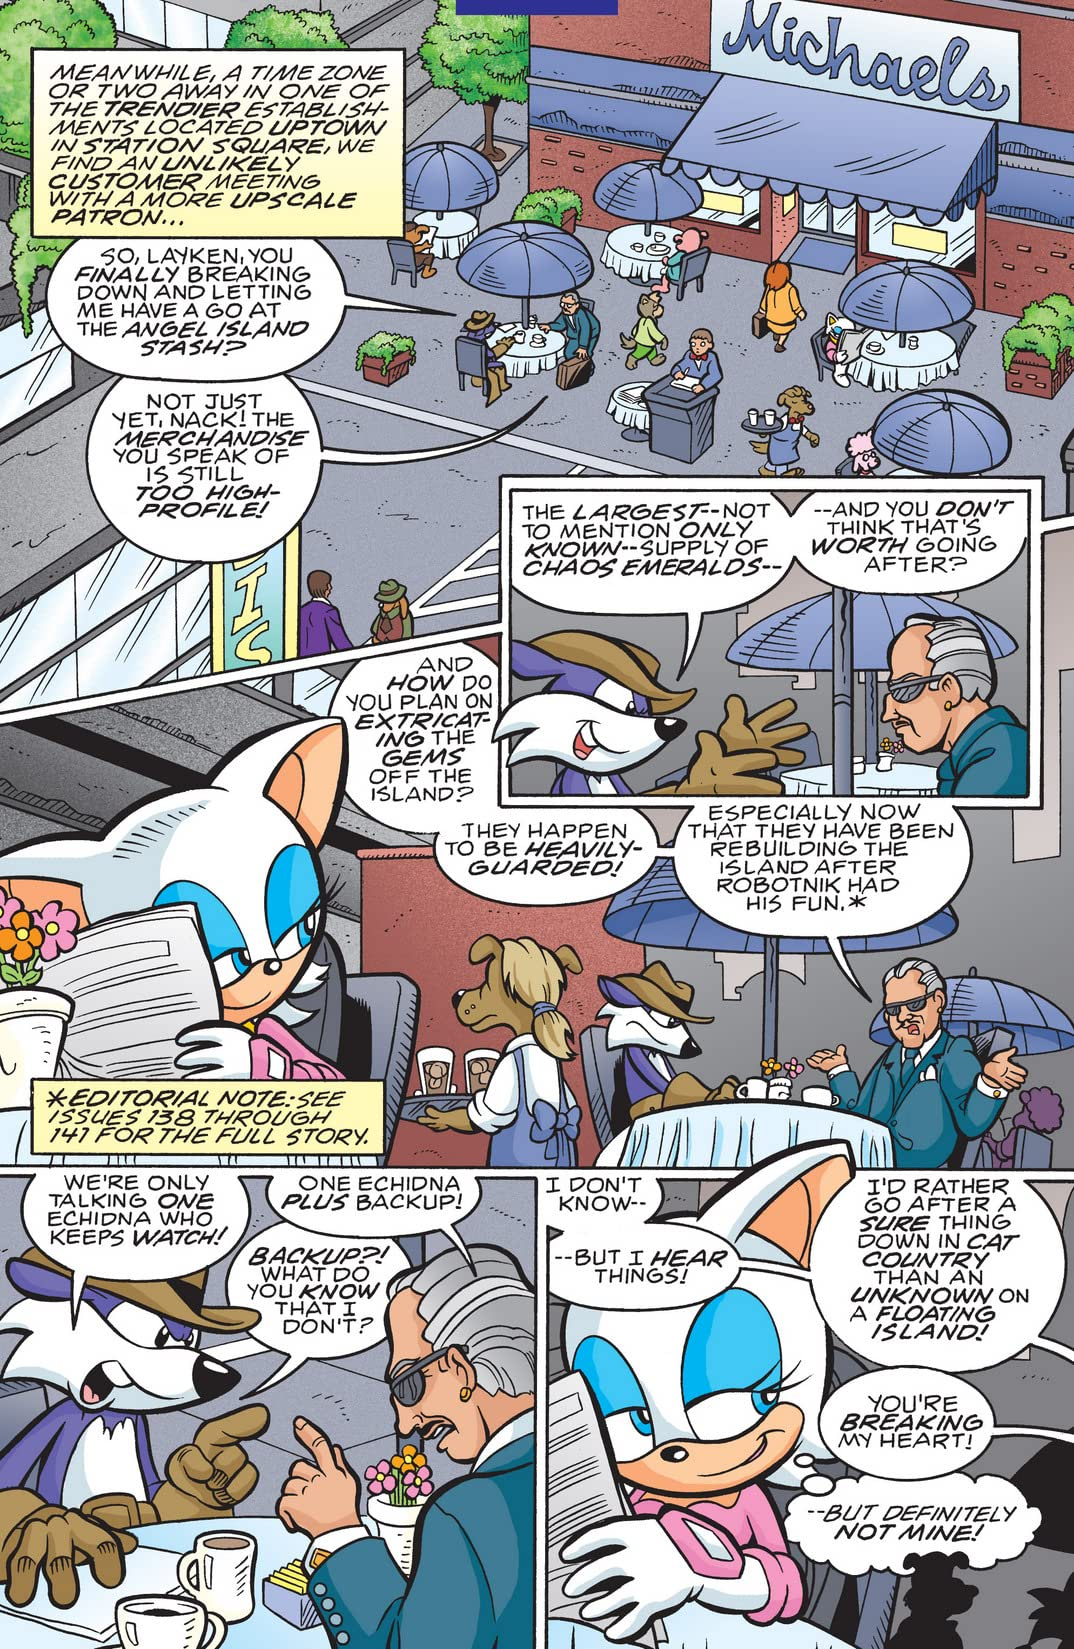 Sonic the Hedgehog #150